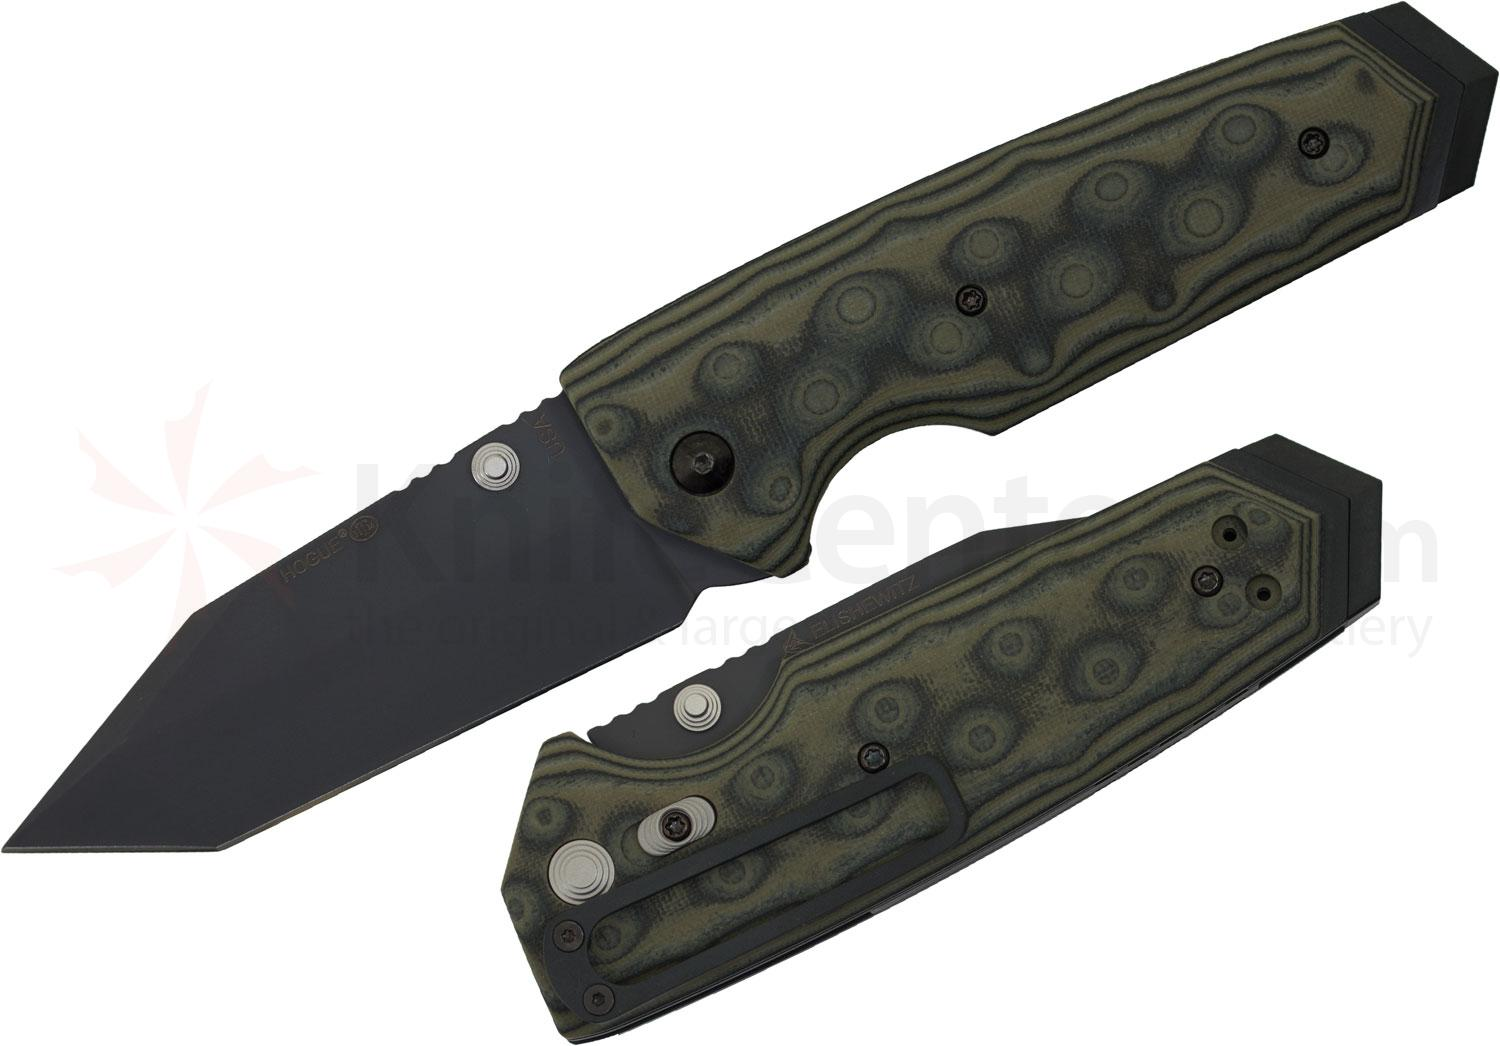 Hogue EX02 3.75 inch Tactical Tanto Blade with G-Mascus Green G-10 Handles